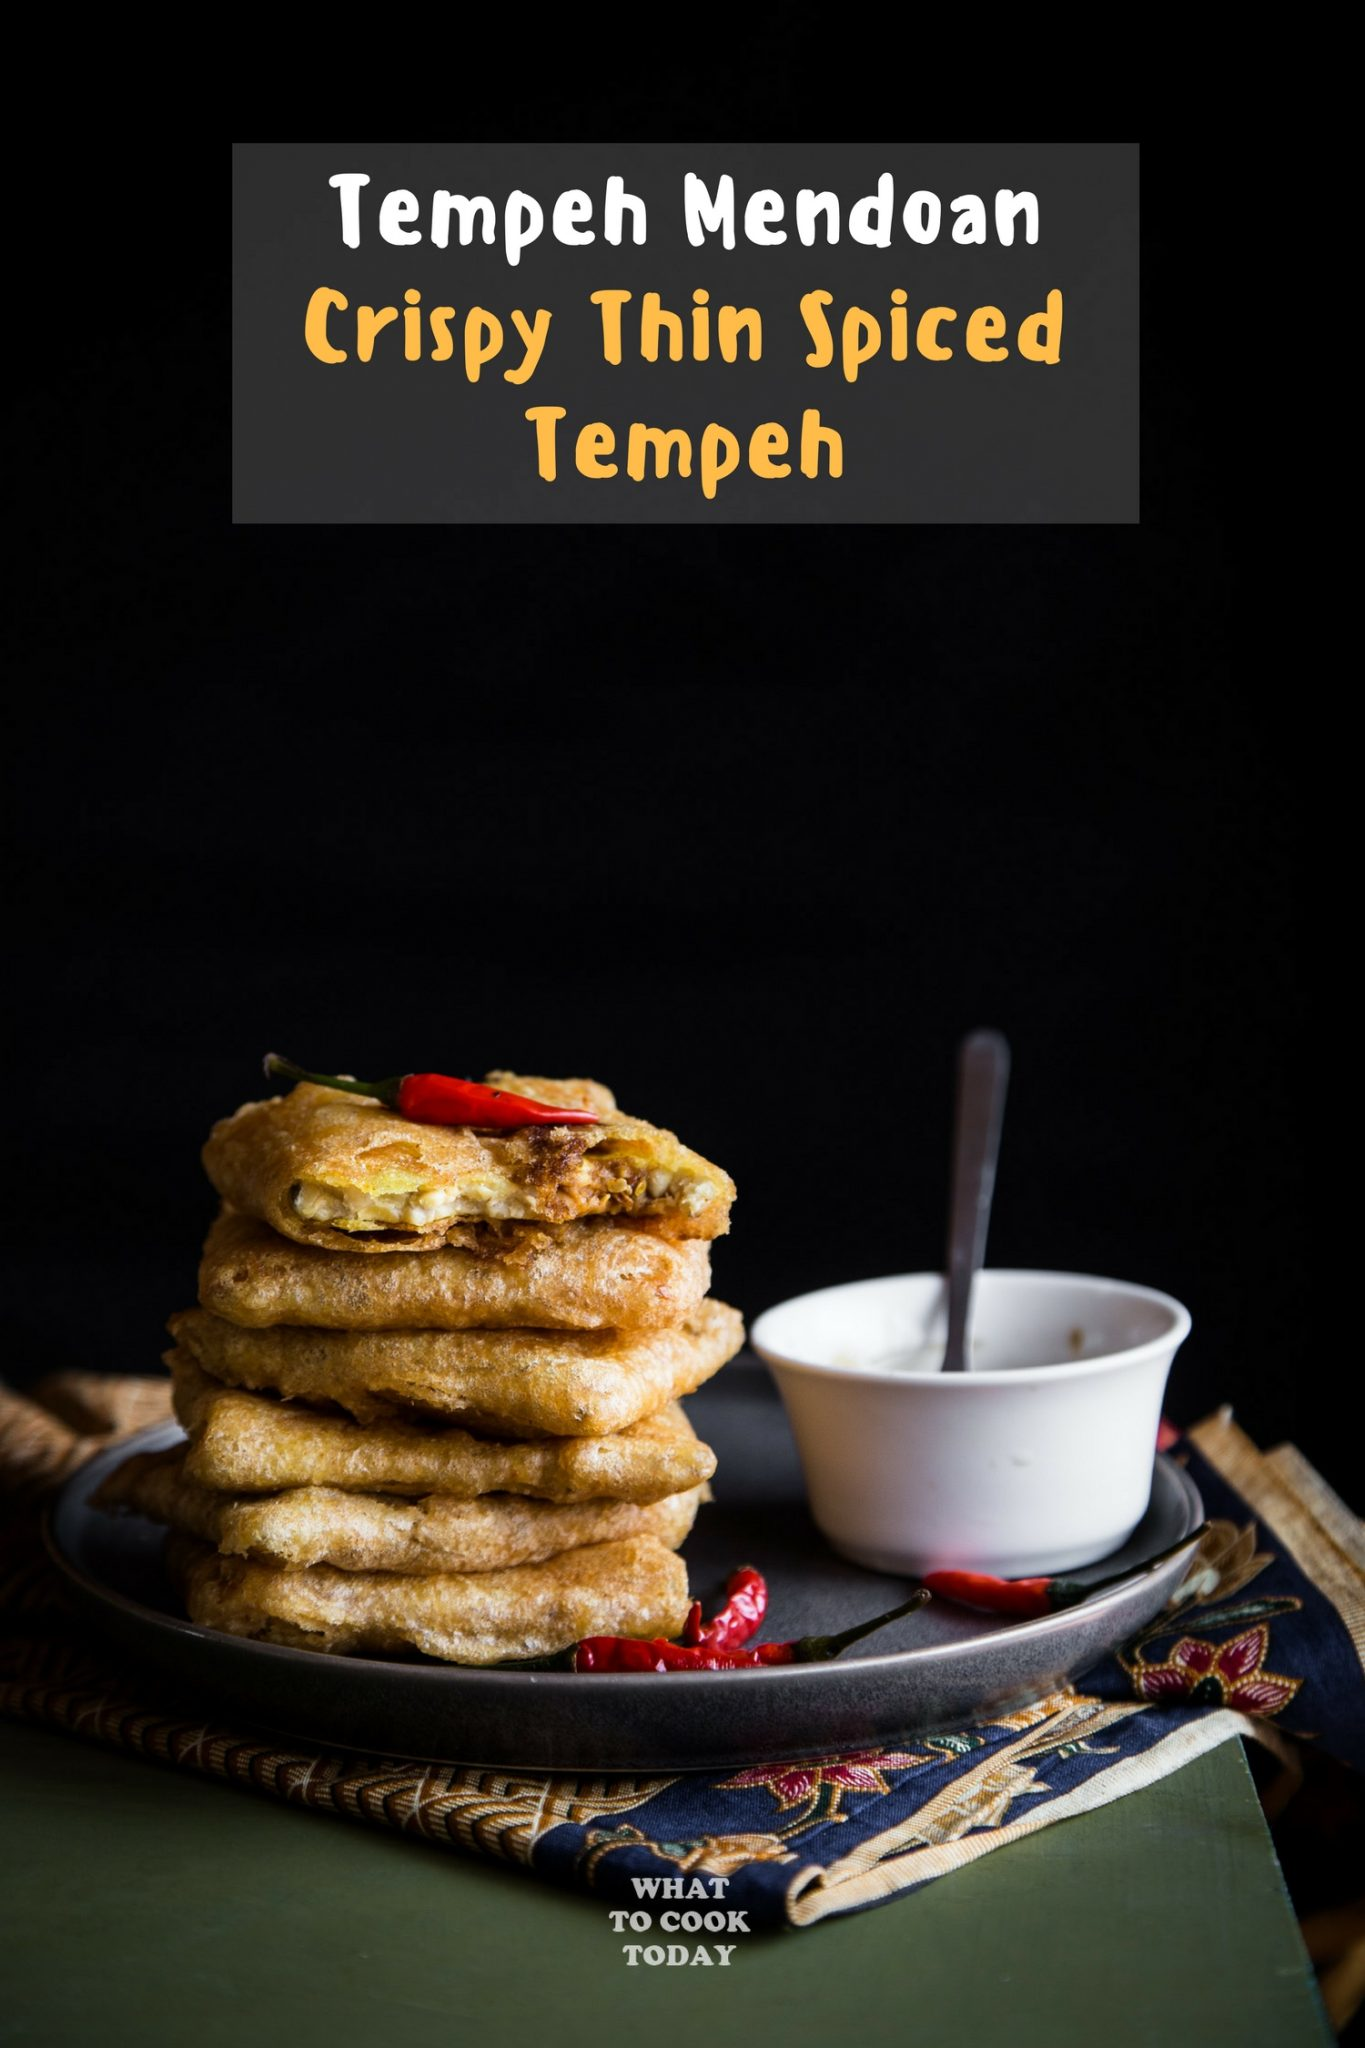 Tempe Mendoan / Crispy Thin Fried Tempeh #tempeh #snack #recipe #vegan